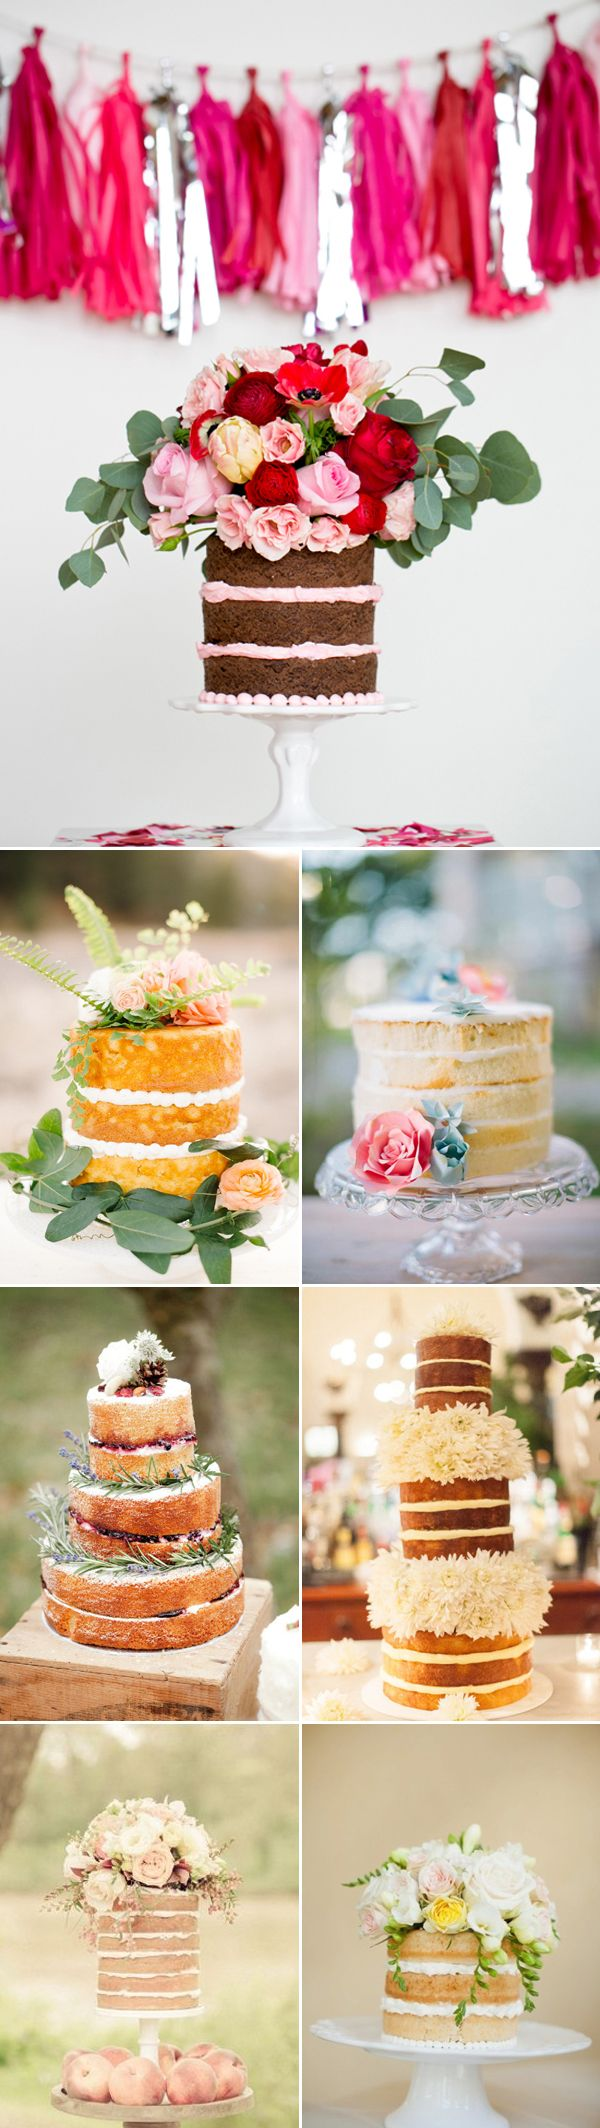 Naked Wedding Cakes with fresh flowers